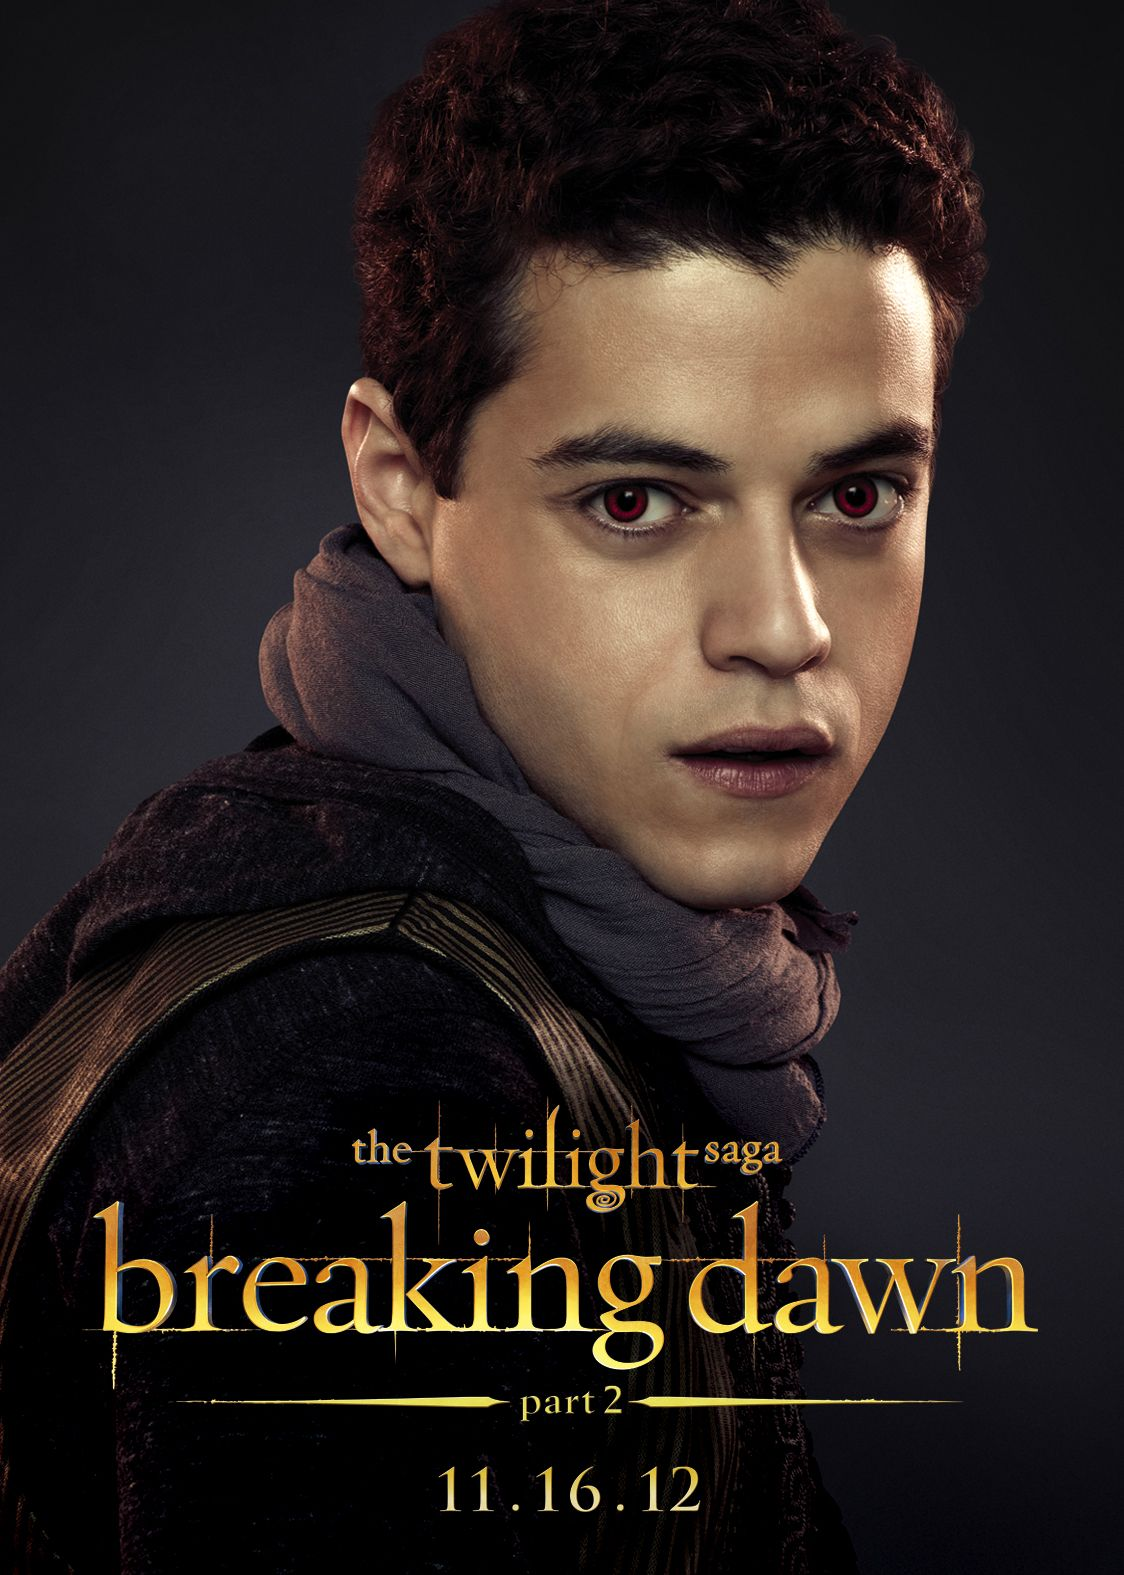 Benjamin Of Egyptian Coven Twilight Breaking Dawn Breaking Dawn